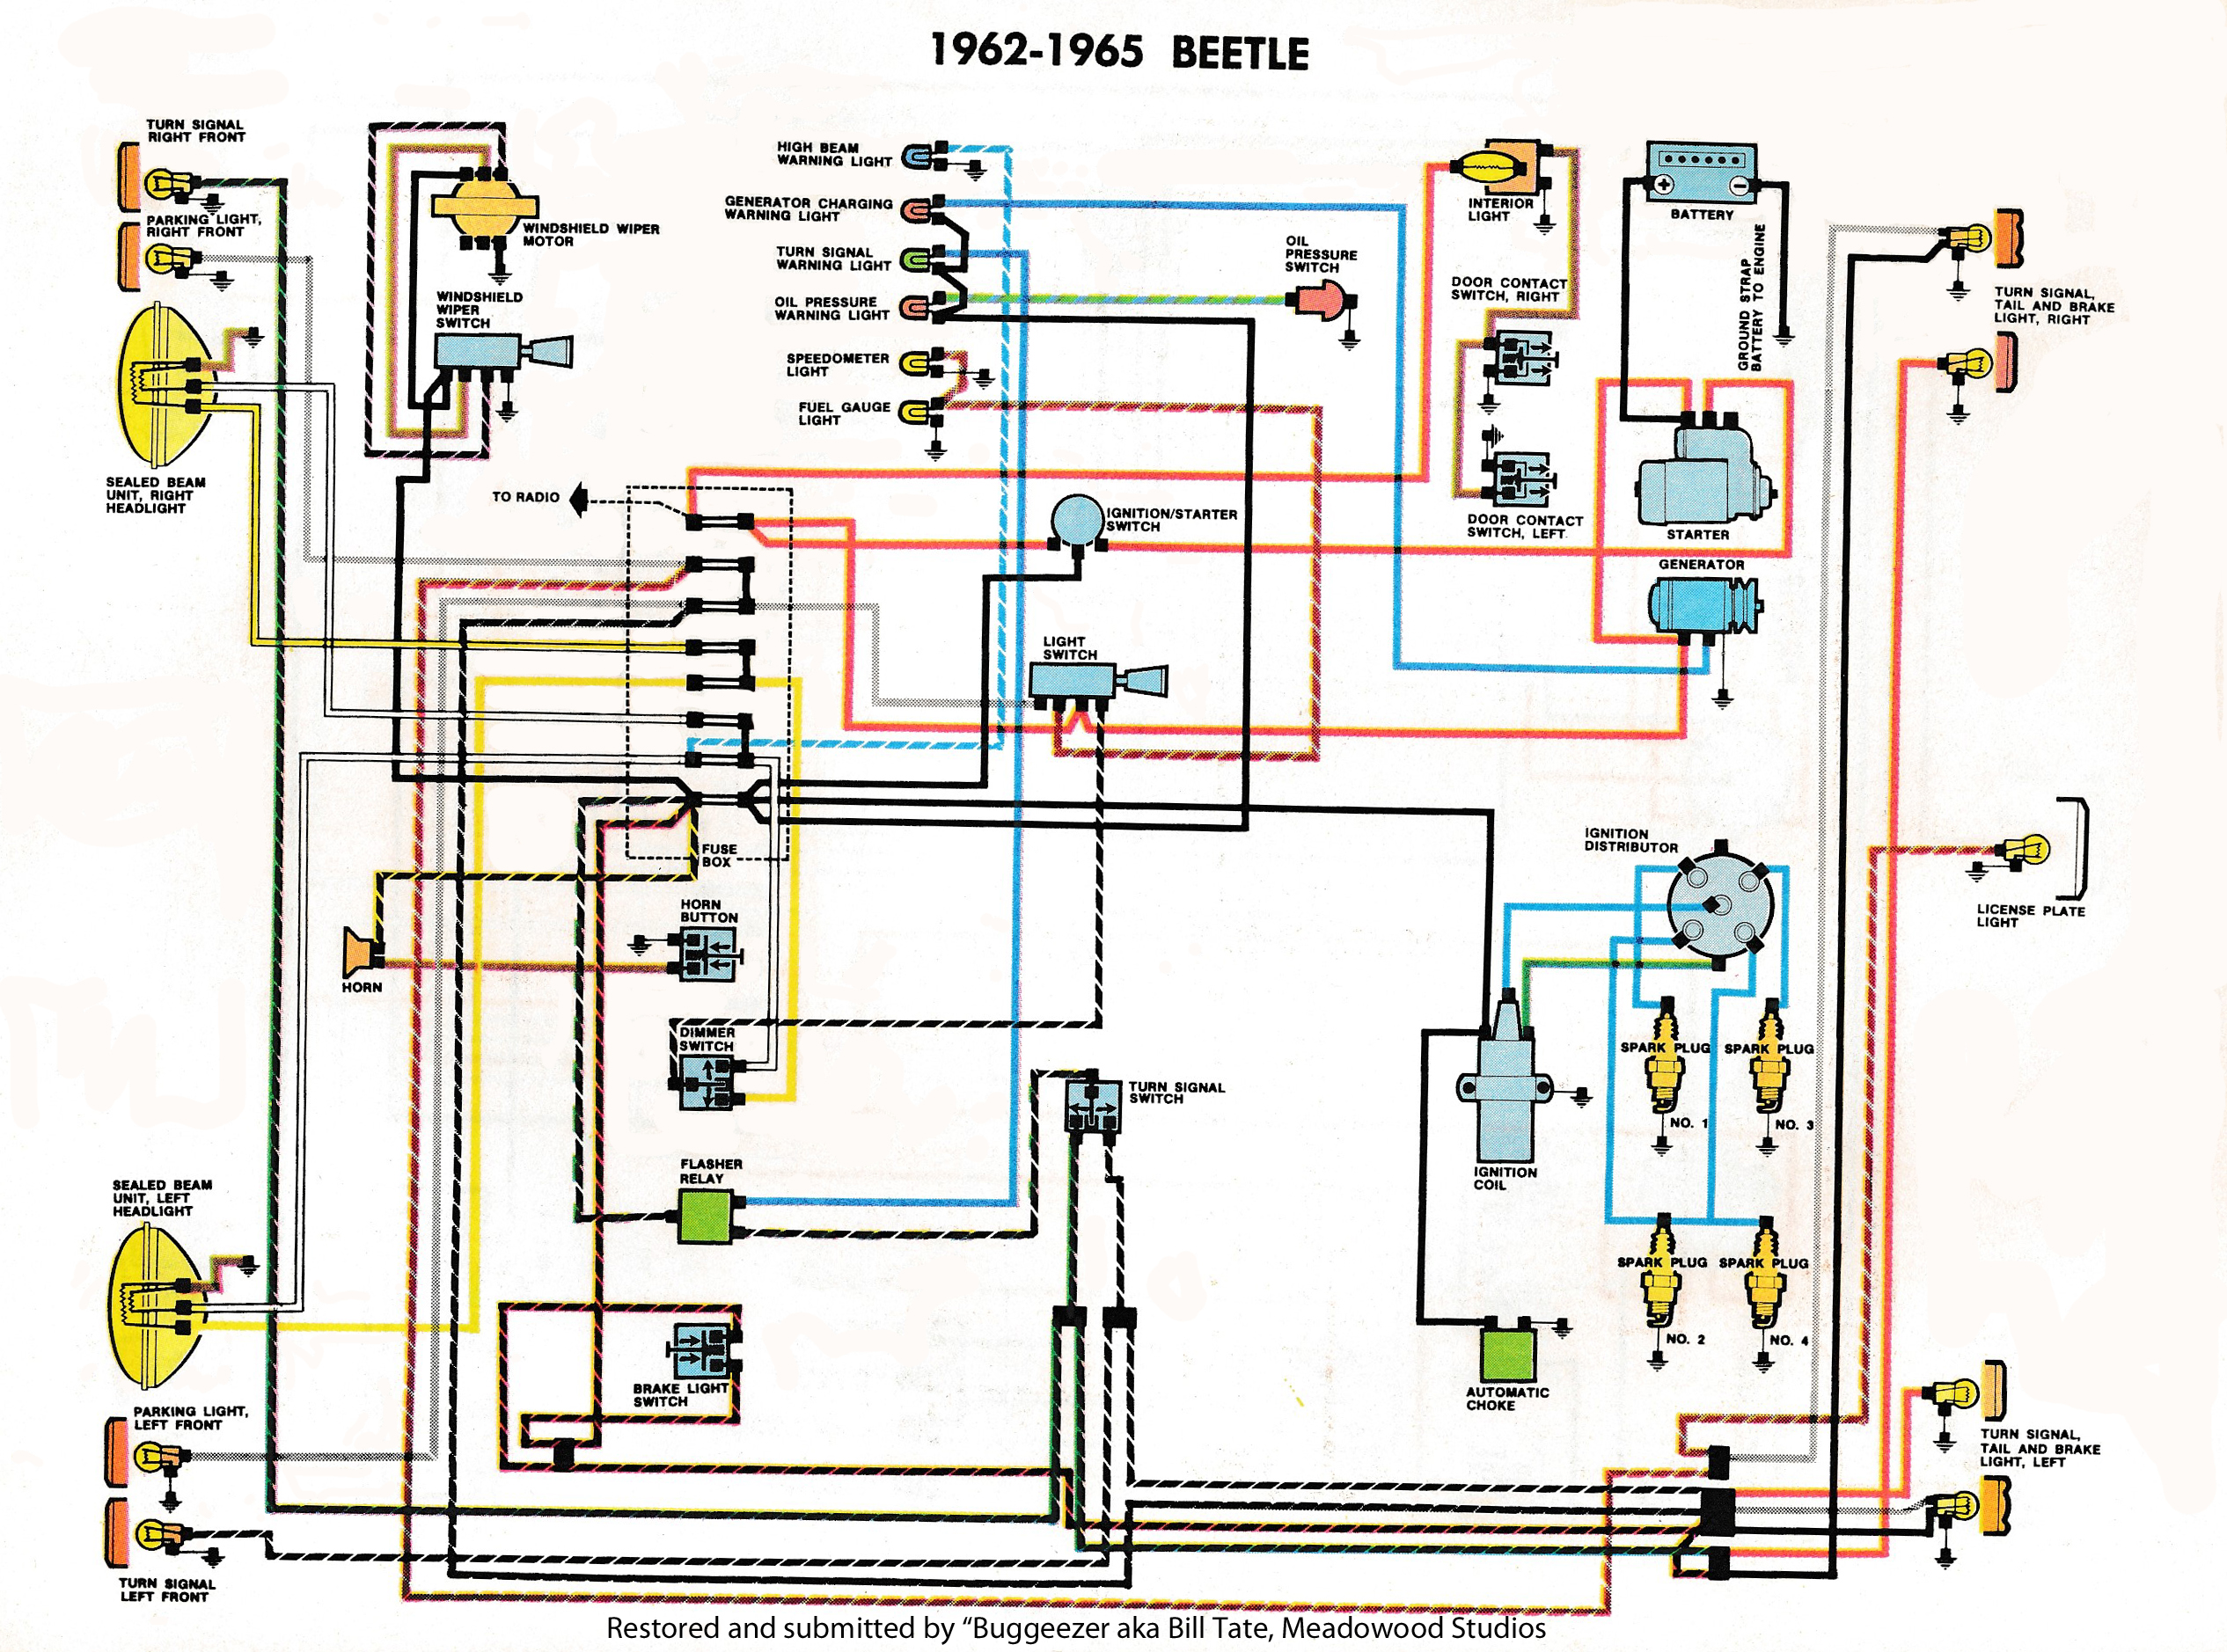 Beetle_1962 65_Clymers?quality=80&strip=all interesting porsche 912e wiring diagram images best image engine